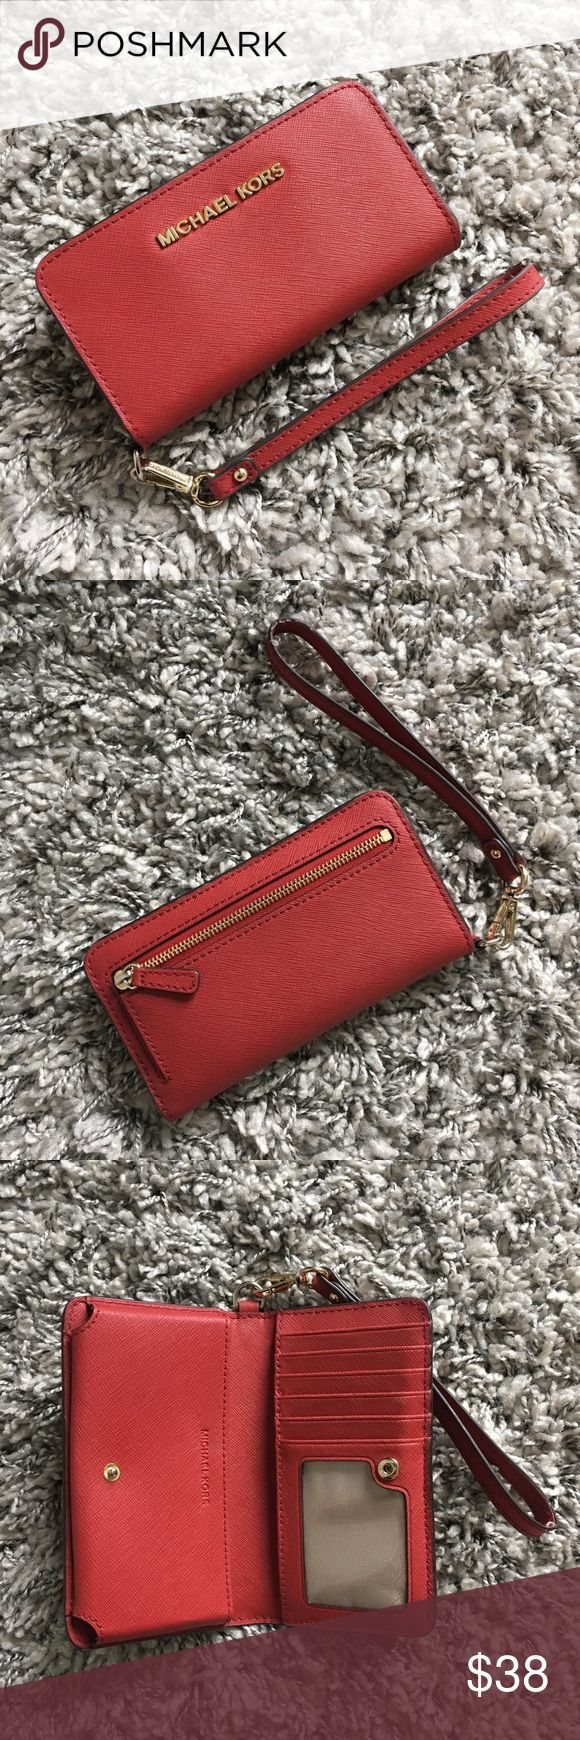 Michael Kors tech wallet / phone wristlet (red) Michael Kors red tech wallet. Fits iPhone 6/6s, but not 6/6s plus. Perfect for having your phone and credit cards all in one place. Has place for cash and has a zipper on the back for coins. Super convenient when running errands or just everyday use as a wallet! Signs of wear on the credit card slots and wear on the trim of the wrist strap, as shown in the last two pictures. Michael Kors Bags Wallets